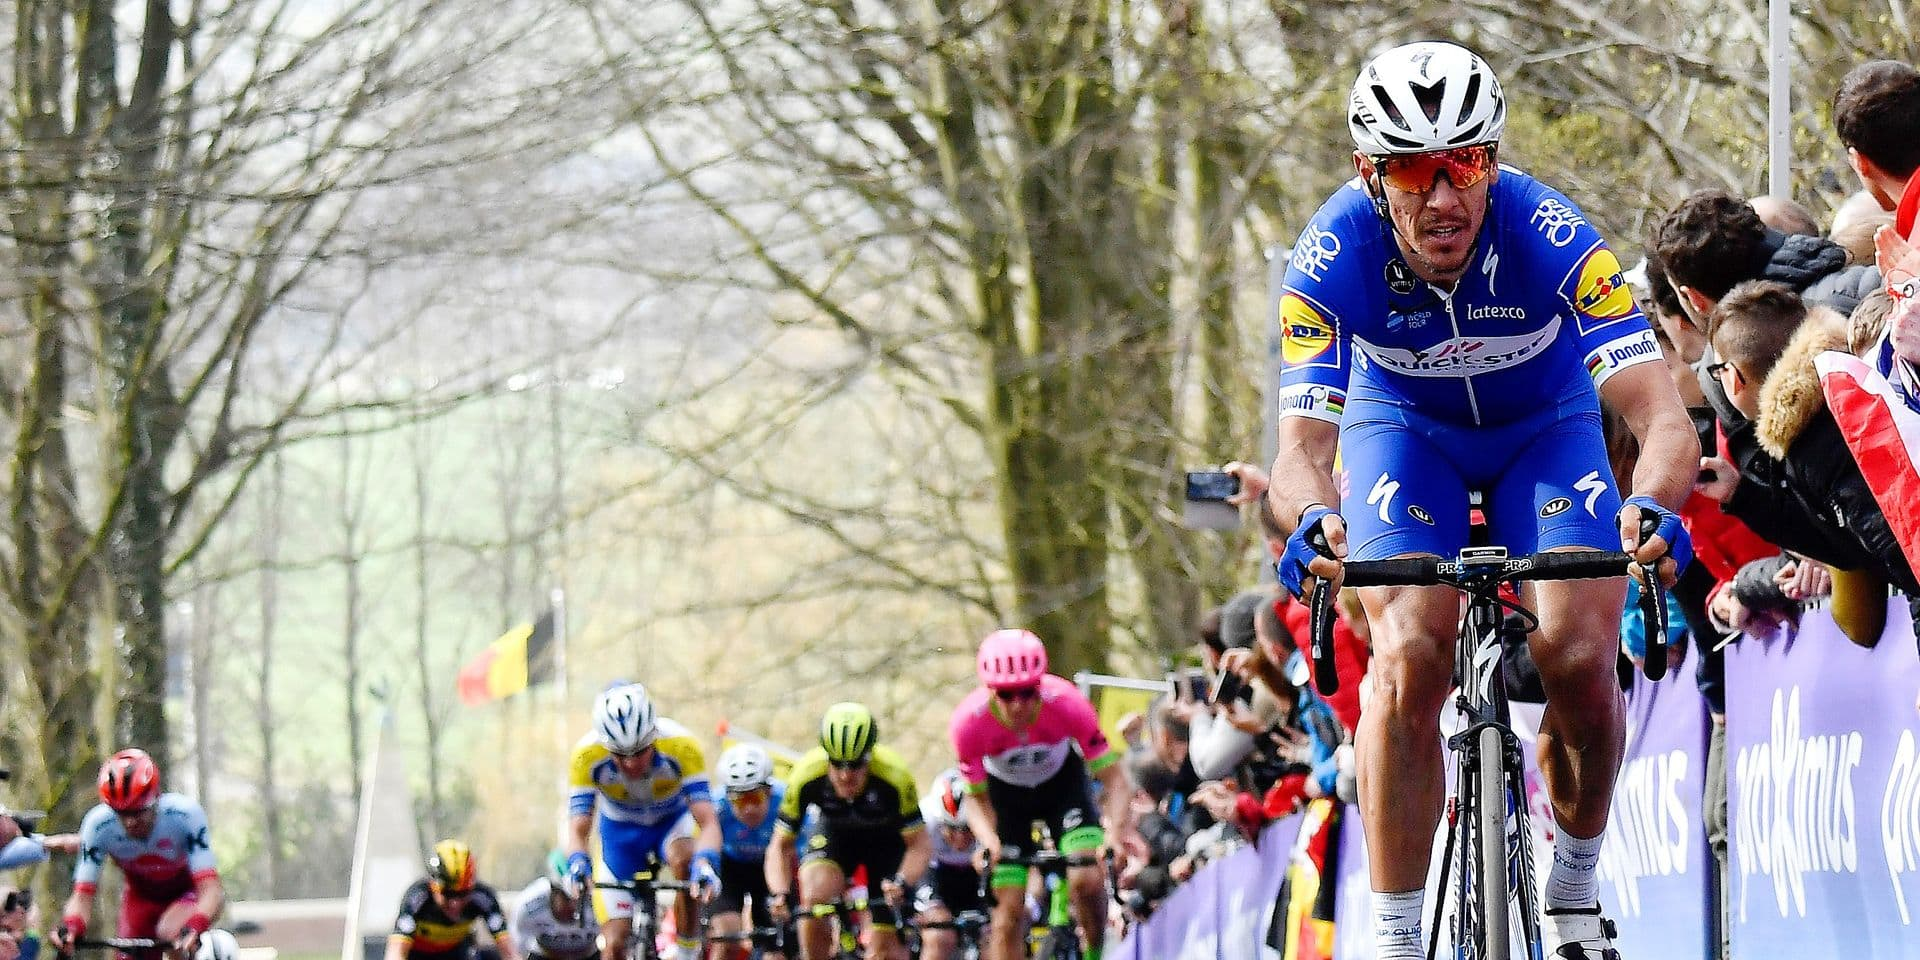 Belgian Philippe Gilbert of Quick-Step Floors pictured in action on the cobblestones of the Kemmelberg during the 80th edition of the Gent-Wevelgem cycling race, 251,1 km from Deinze, near Gent, to Wevelgem, Sunday 25 March 2018. BELGA PHOTO DIRK WAEM